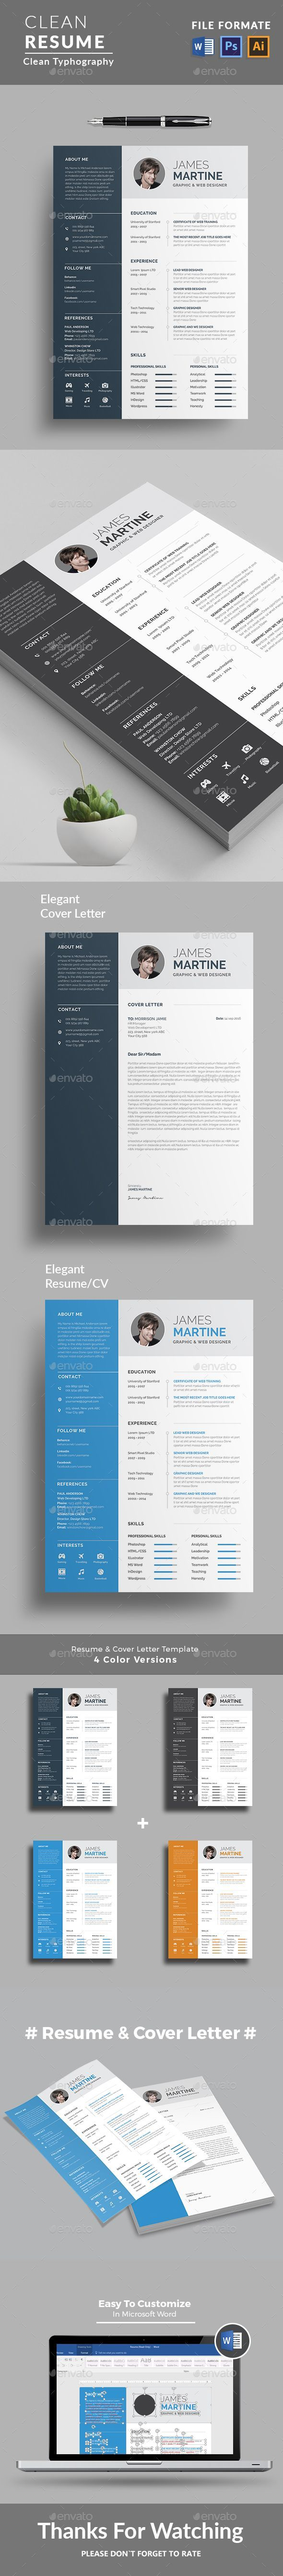 What Should A Professional Resume Look Like  Best Images About Resume On Pinterest  Template Creative  Resume For Highschool Students Word with Account Coordinator Resume Resume Front Desk Manager Resume Word